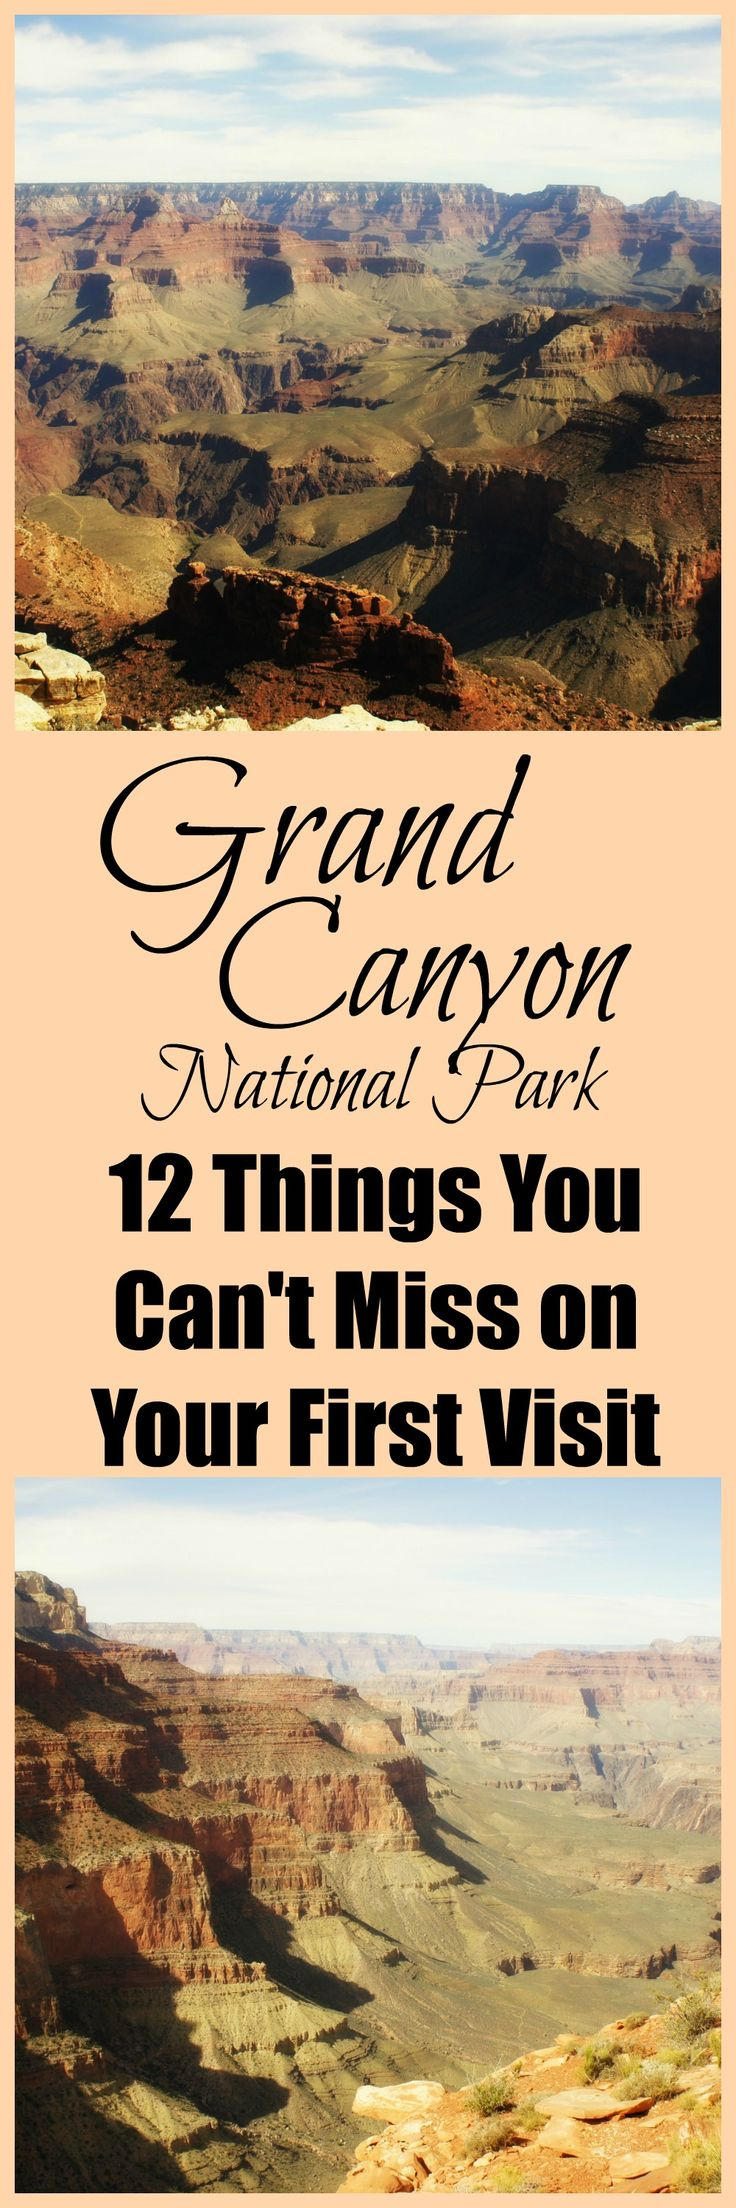 12 Things You Canu0027t Miss on Your